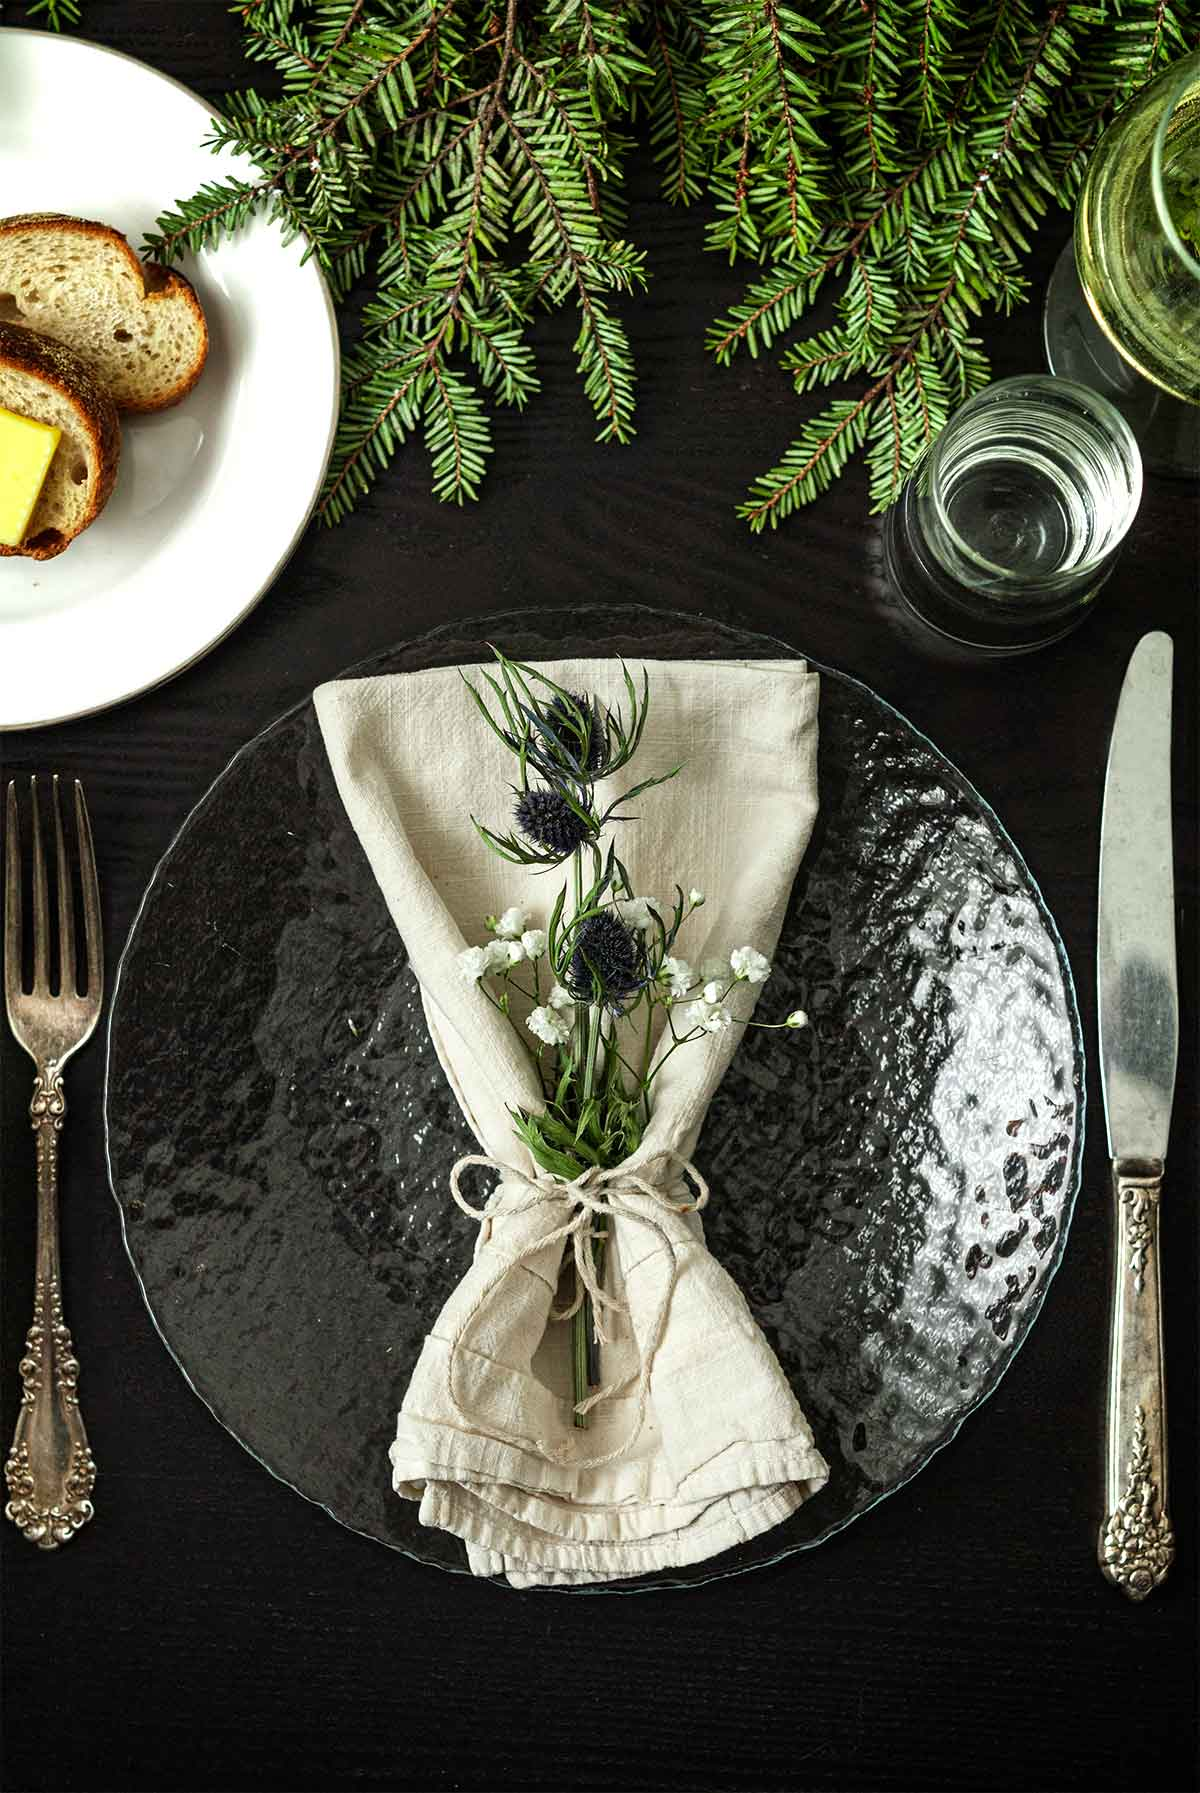 Thistle and Baby's Breath in a napkin on a plate on a table with greenery, a plate of bread, silverware and glassware.